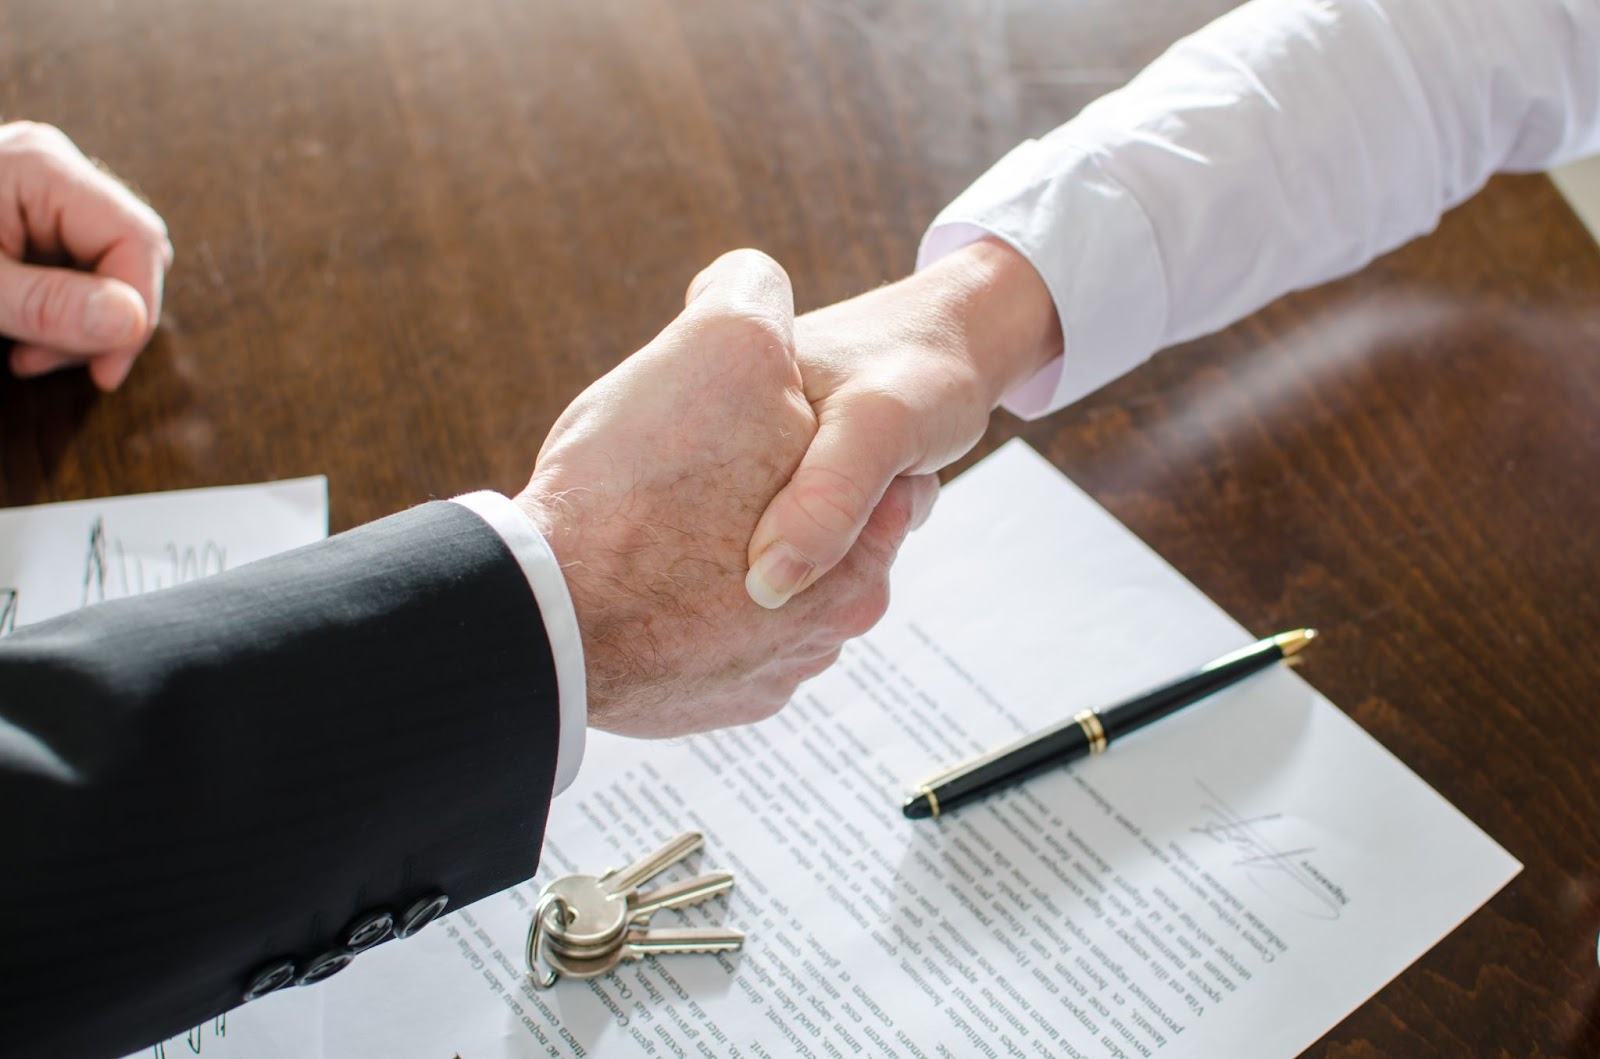 real estate investing for beginners: shaking hands